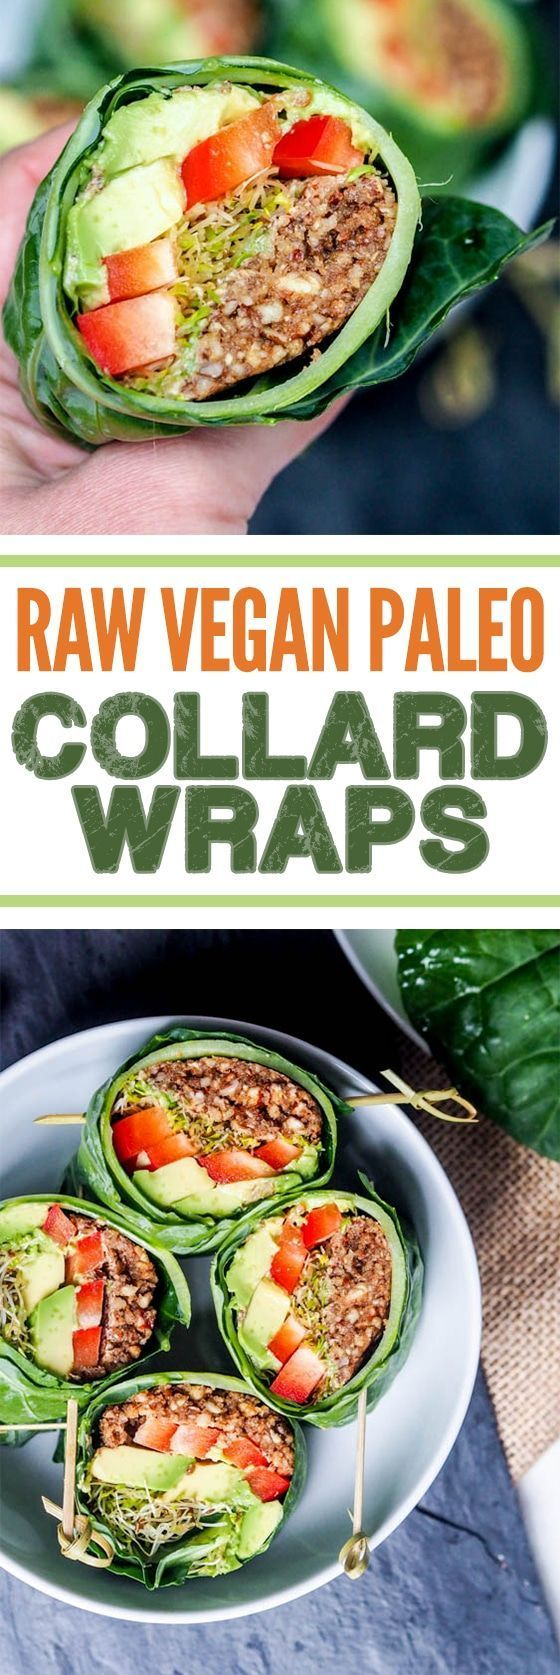 Raw vegan recipes are perfect when you want to eat healthy and detox your body from heavy meals or processed food. These collard wraps are going to be your new favorite healthy lunch. Ready in minutes and bursting with flavors from the avocados, red pepper, alfalfa, pecans and tamari mix. Gluten Free & Paleo too. #GoingRawVegan